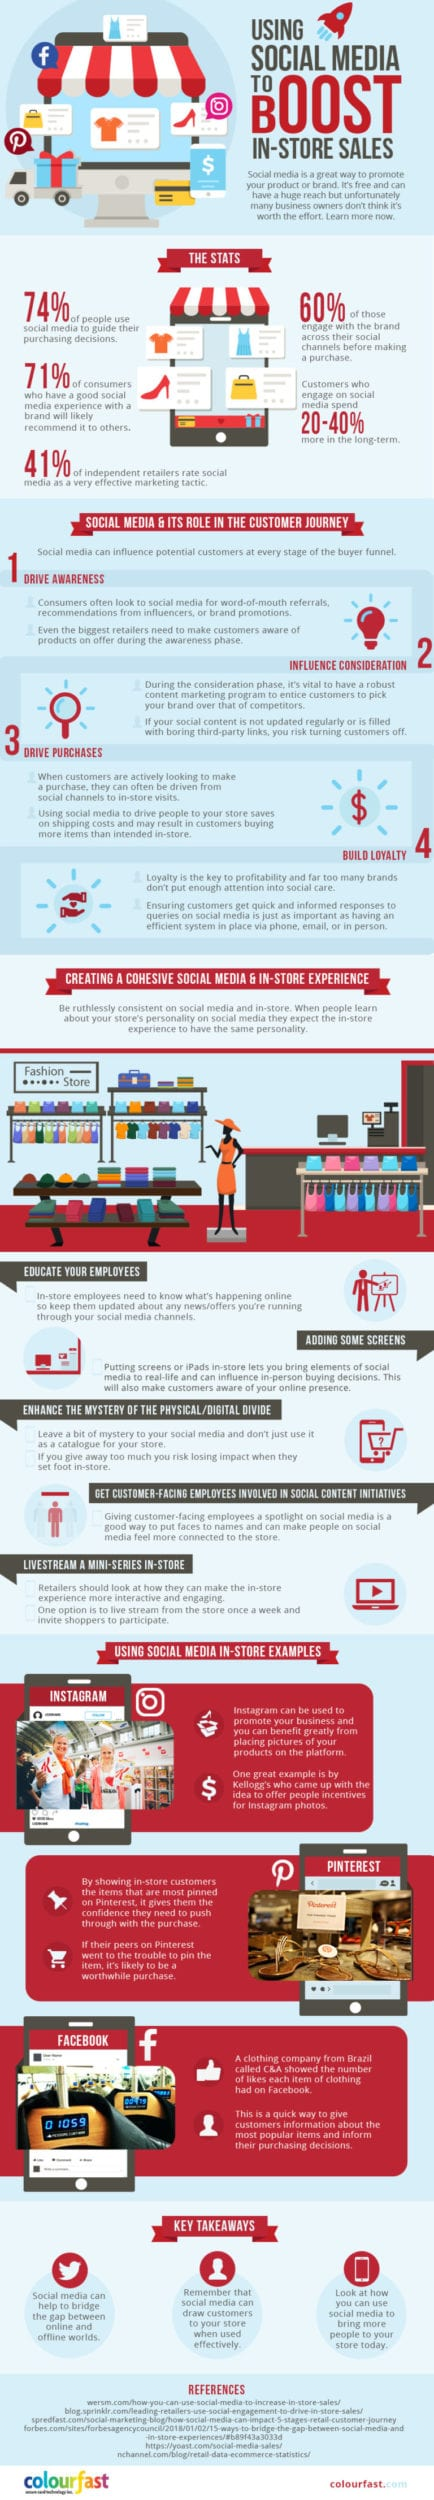 infographic: how to use social media to boost in store sales